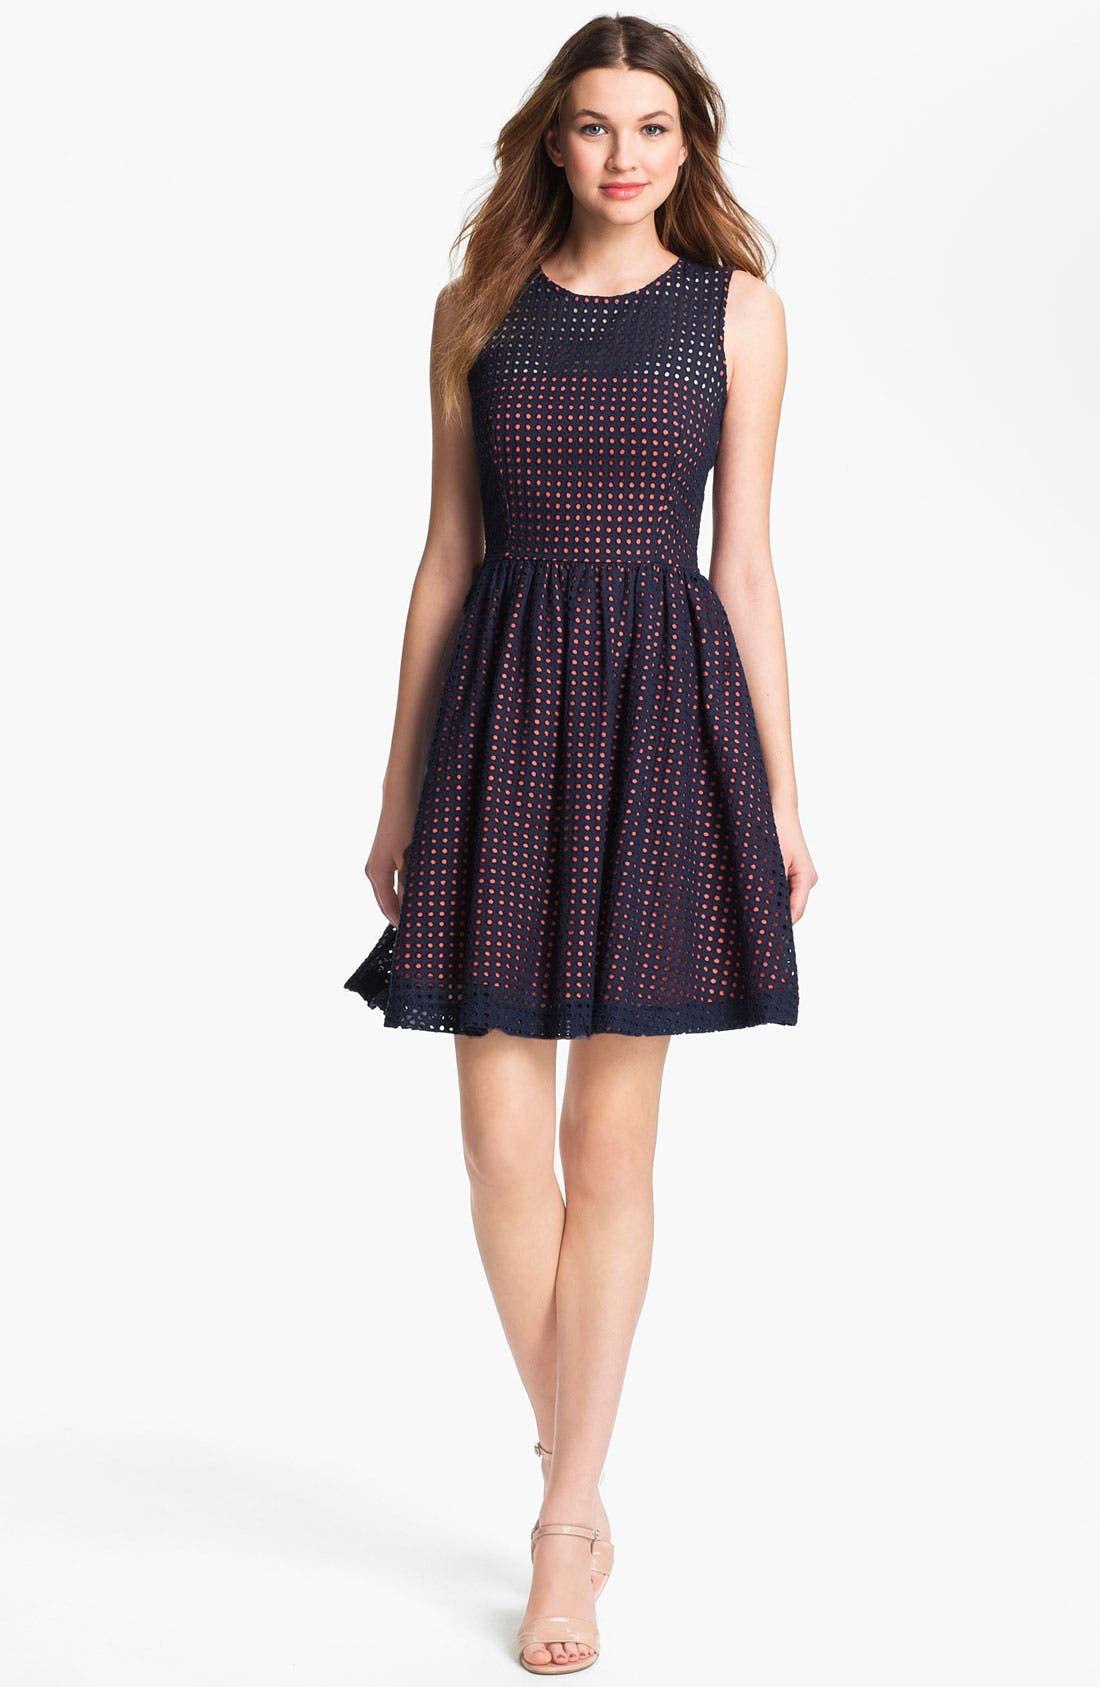 Alternate Image 1 Selected - French Connection Dot Fit & Flare Dress